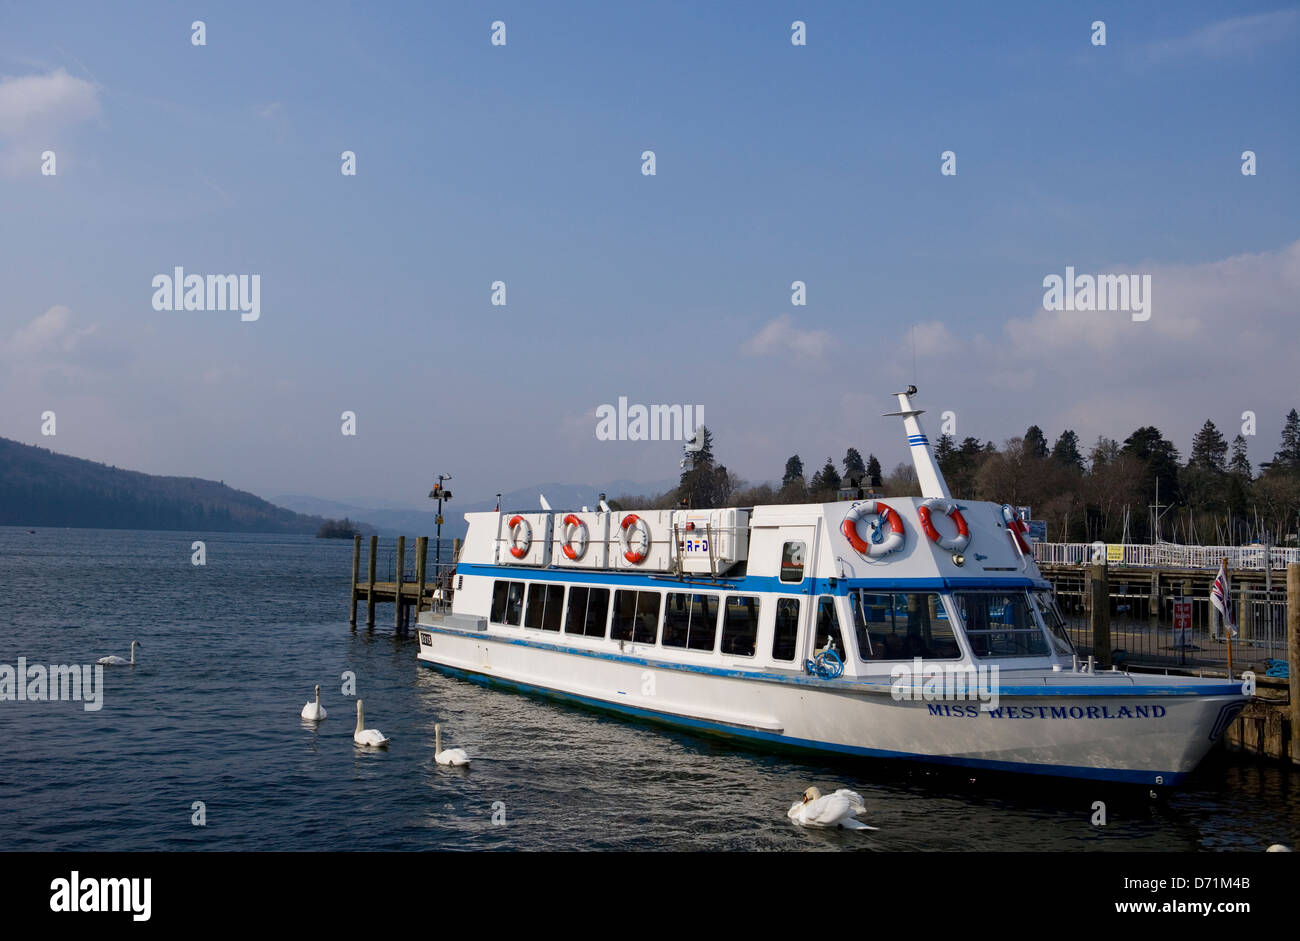 Miss The Boat Stock Photos & Miss The Boat Stock Images - Alamy